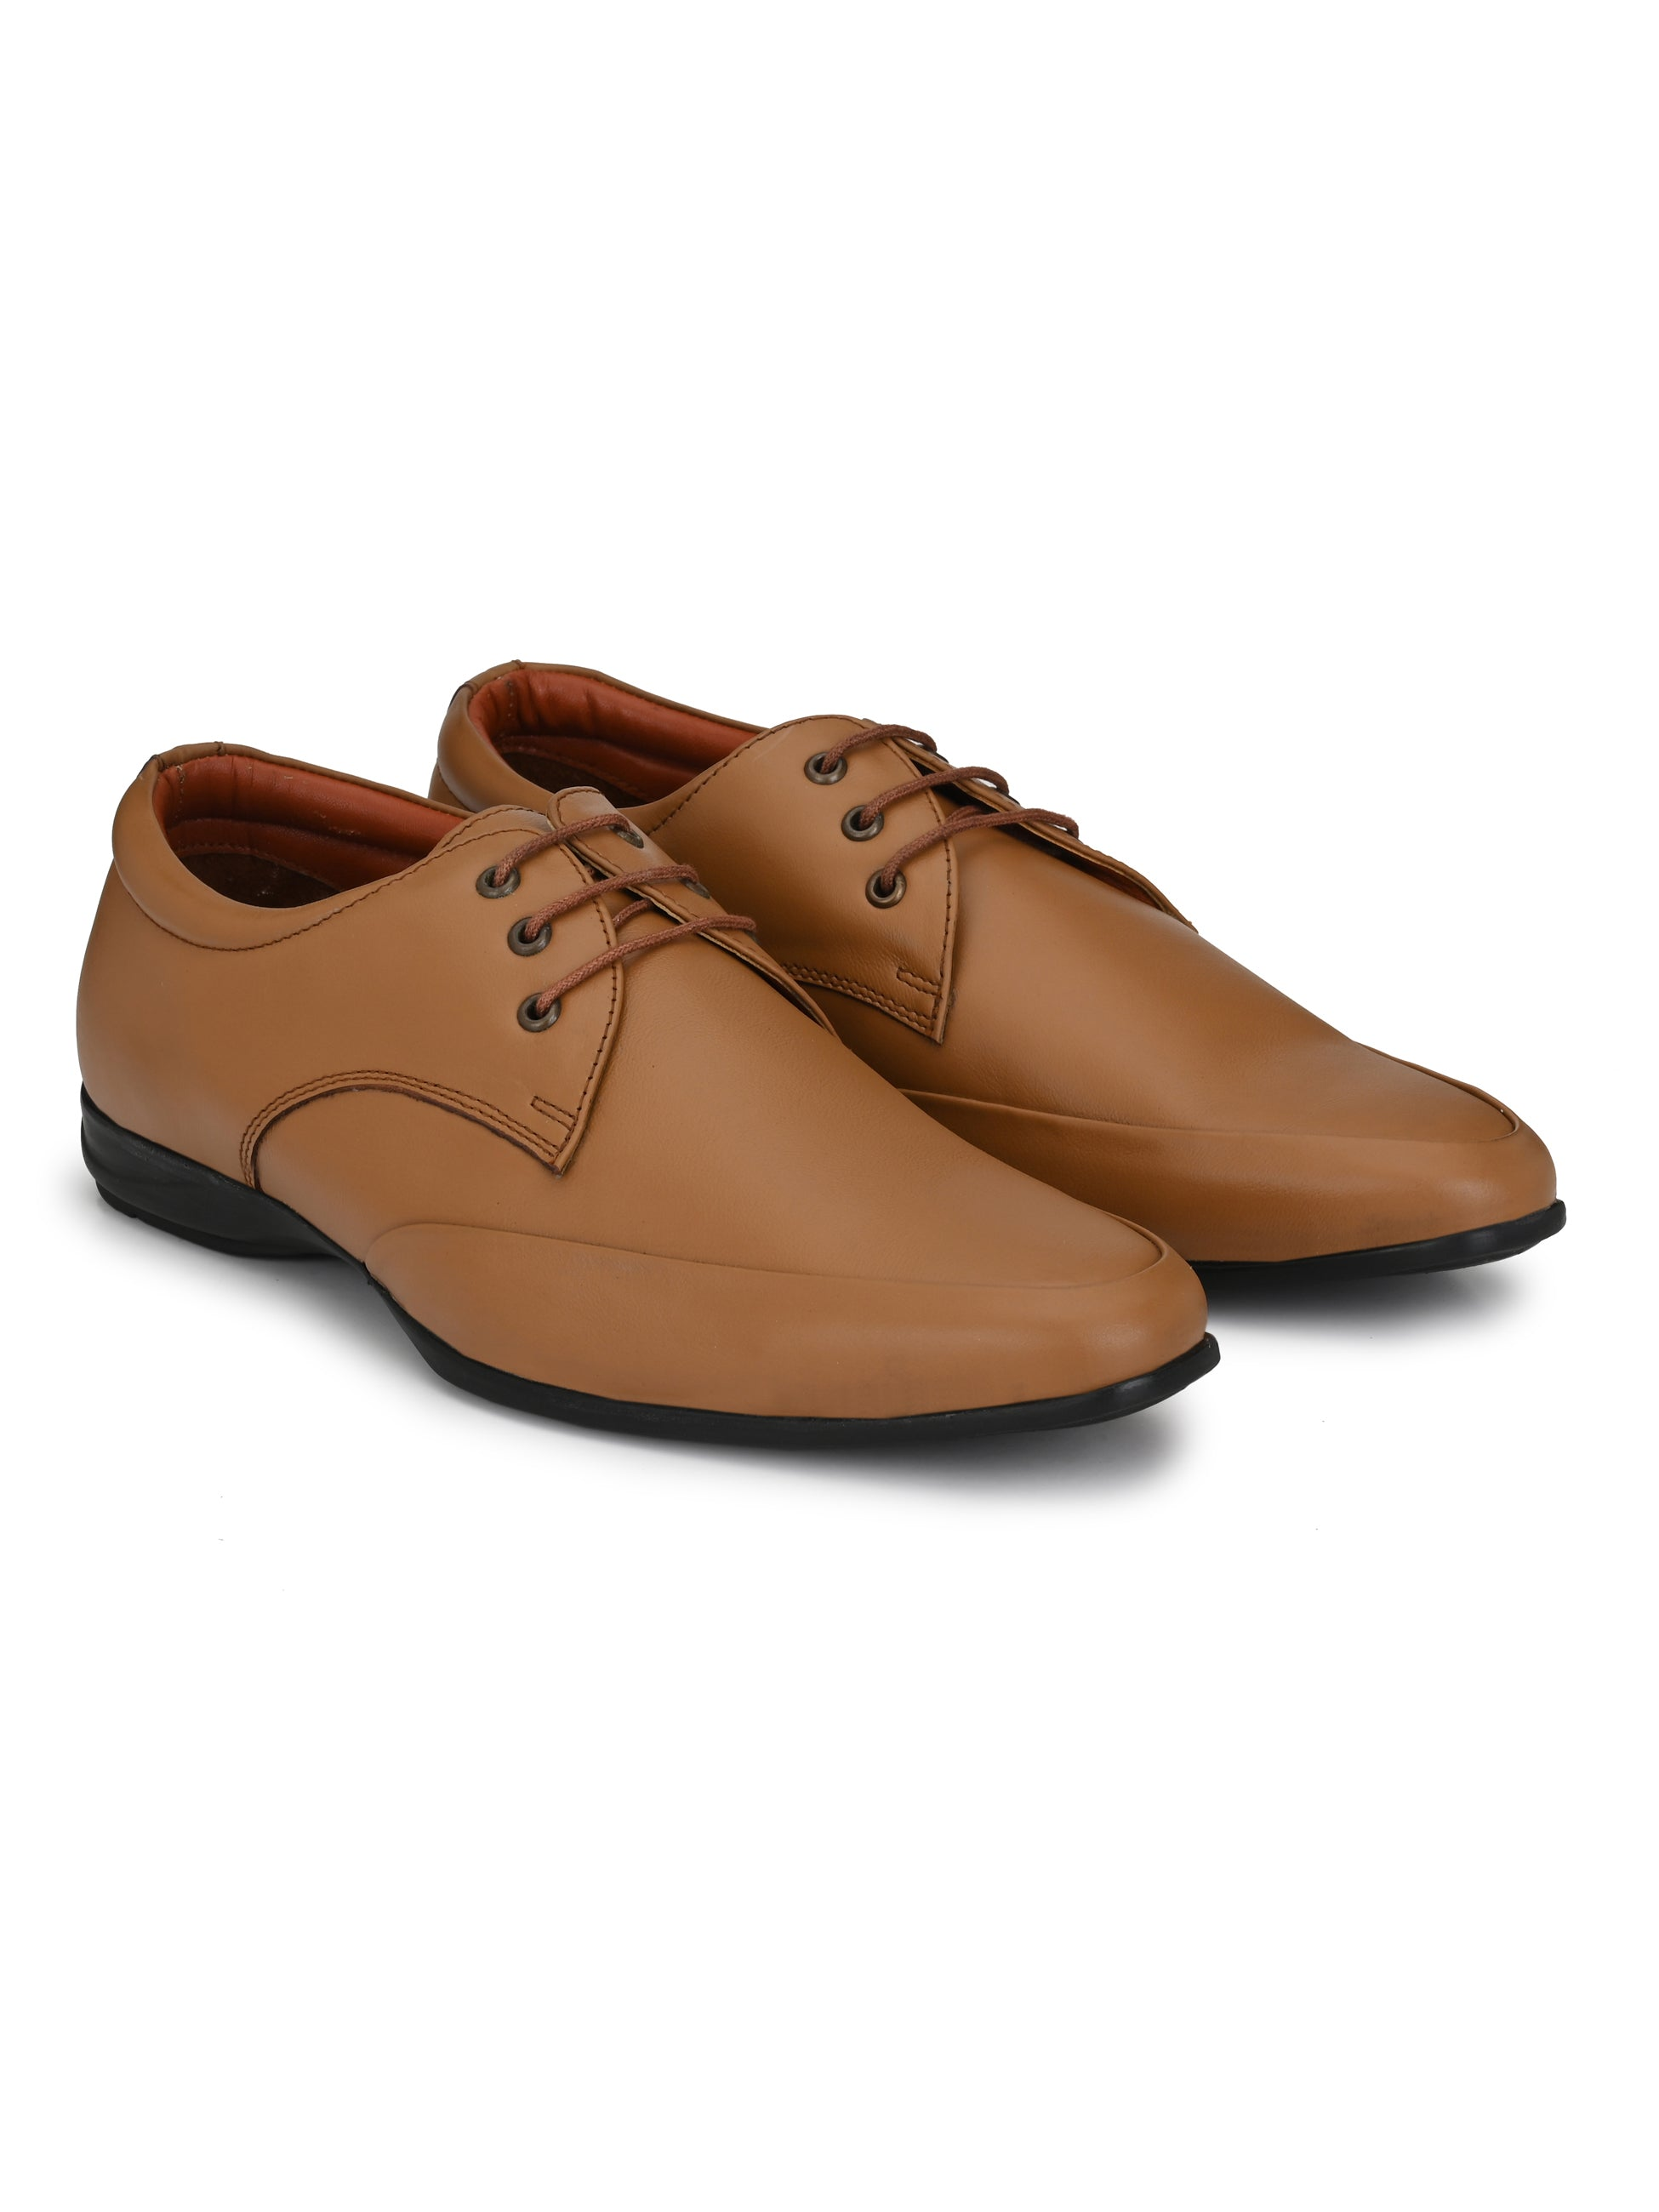 Tan Leather Suave Shoes - shoegaro